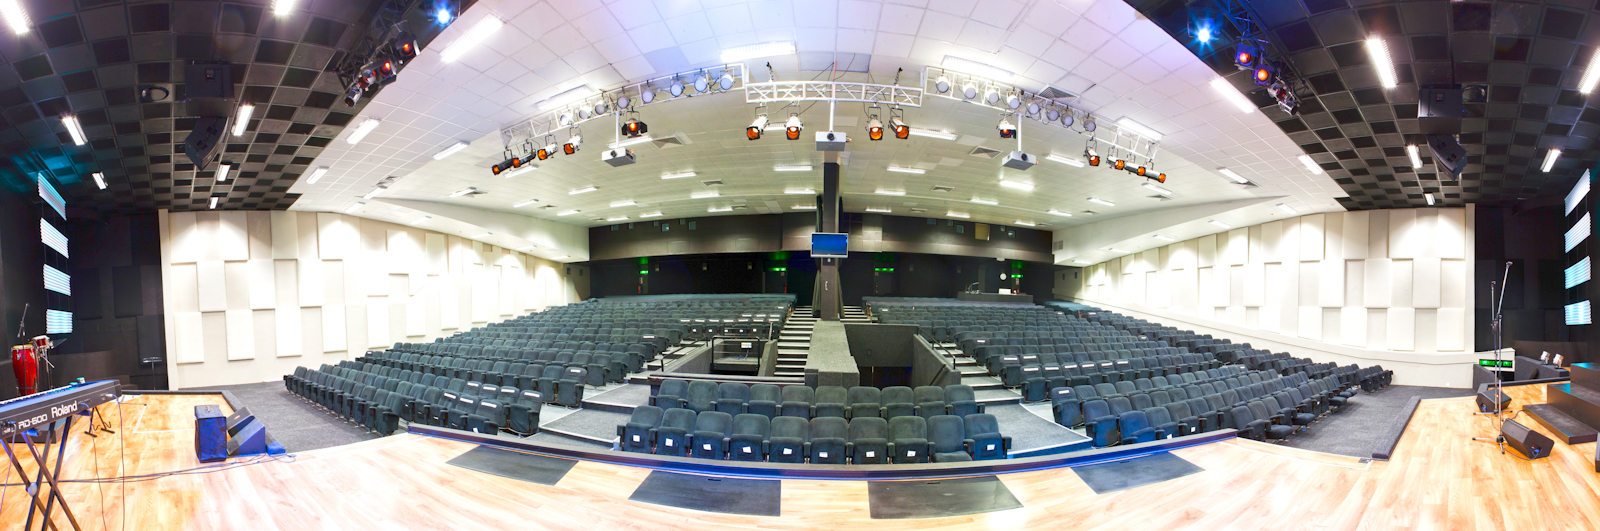 stage_view_pano